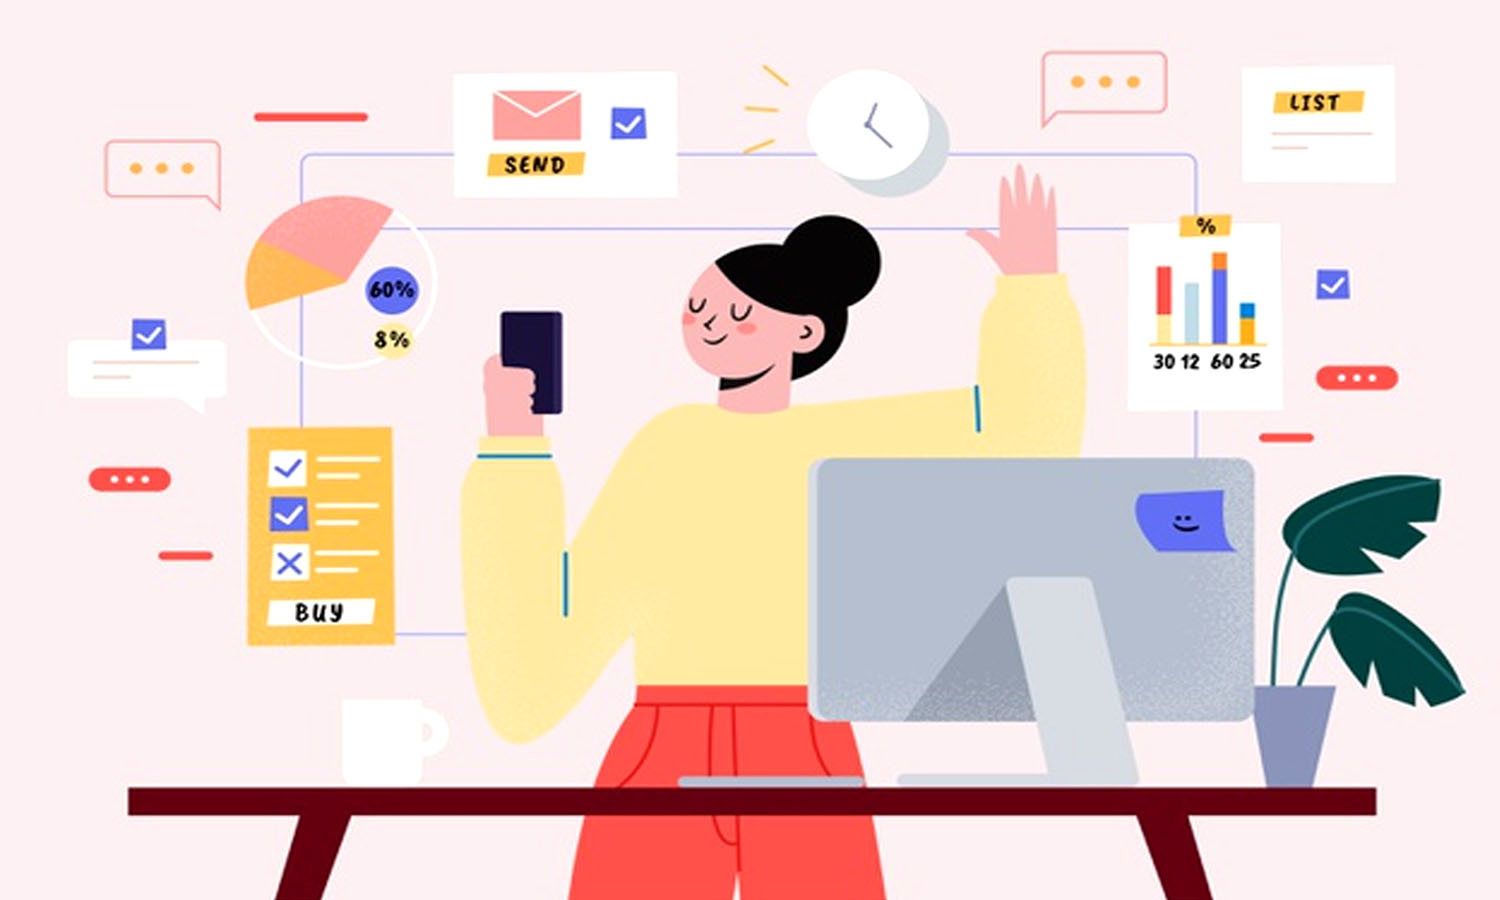 Best Apps for Boosting Productivity: How to Make the Most in 2021